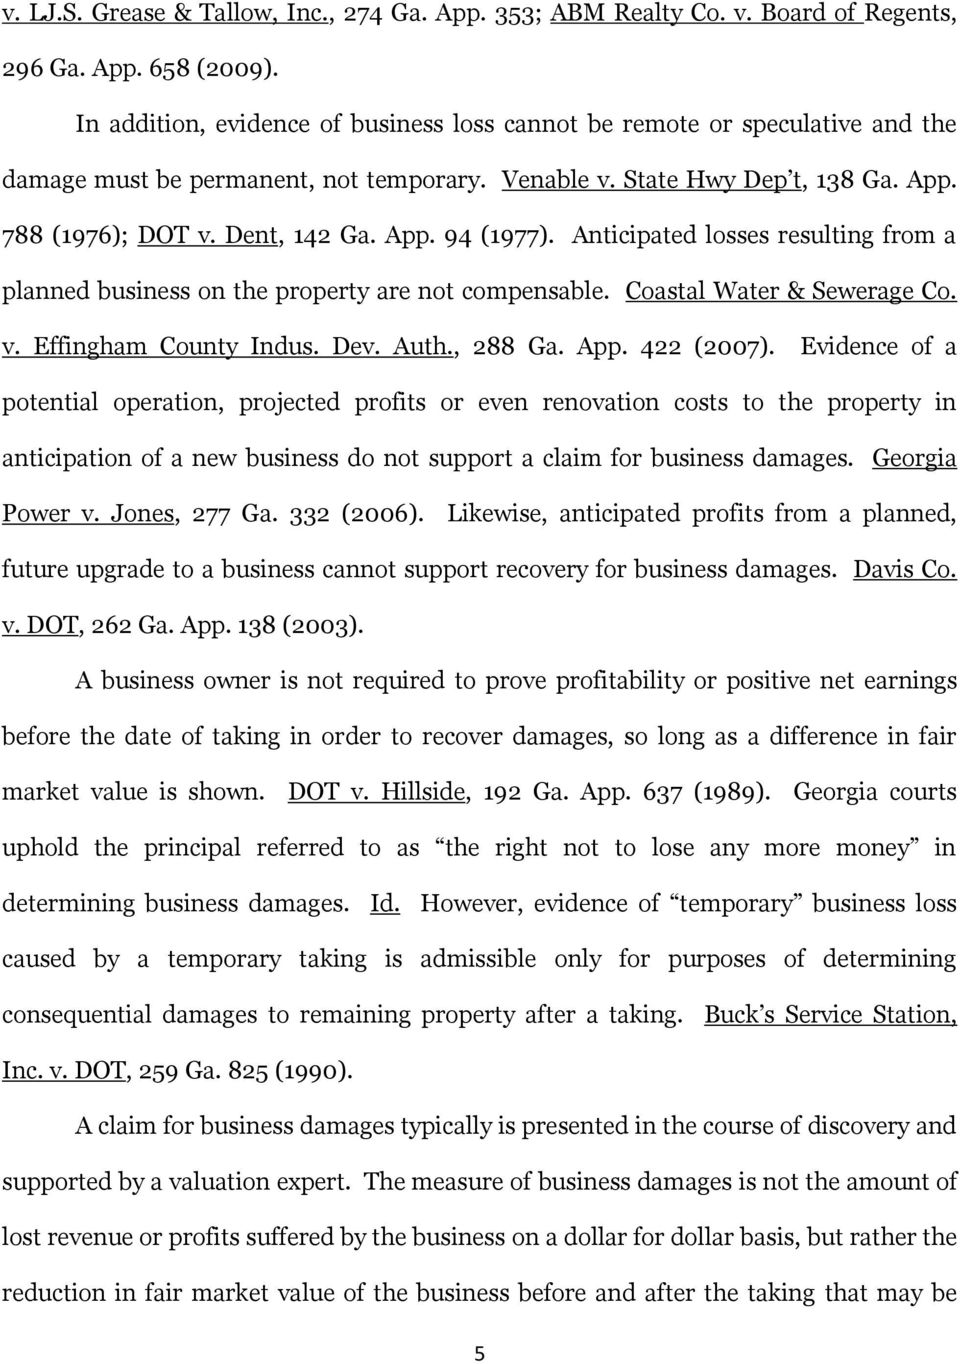 Anticipated losses resulting from a planned business on the property are not compensable. Coastal Water & Sewerage Co. v. Effingham County Indus. Dev. Auth., 288 Ga. App. 422 (2007).